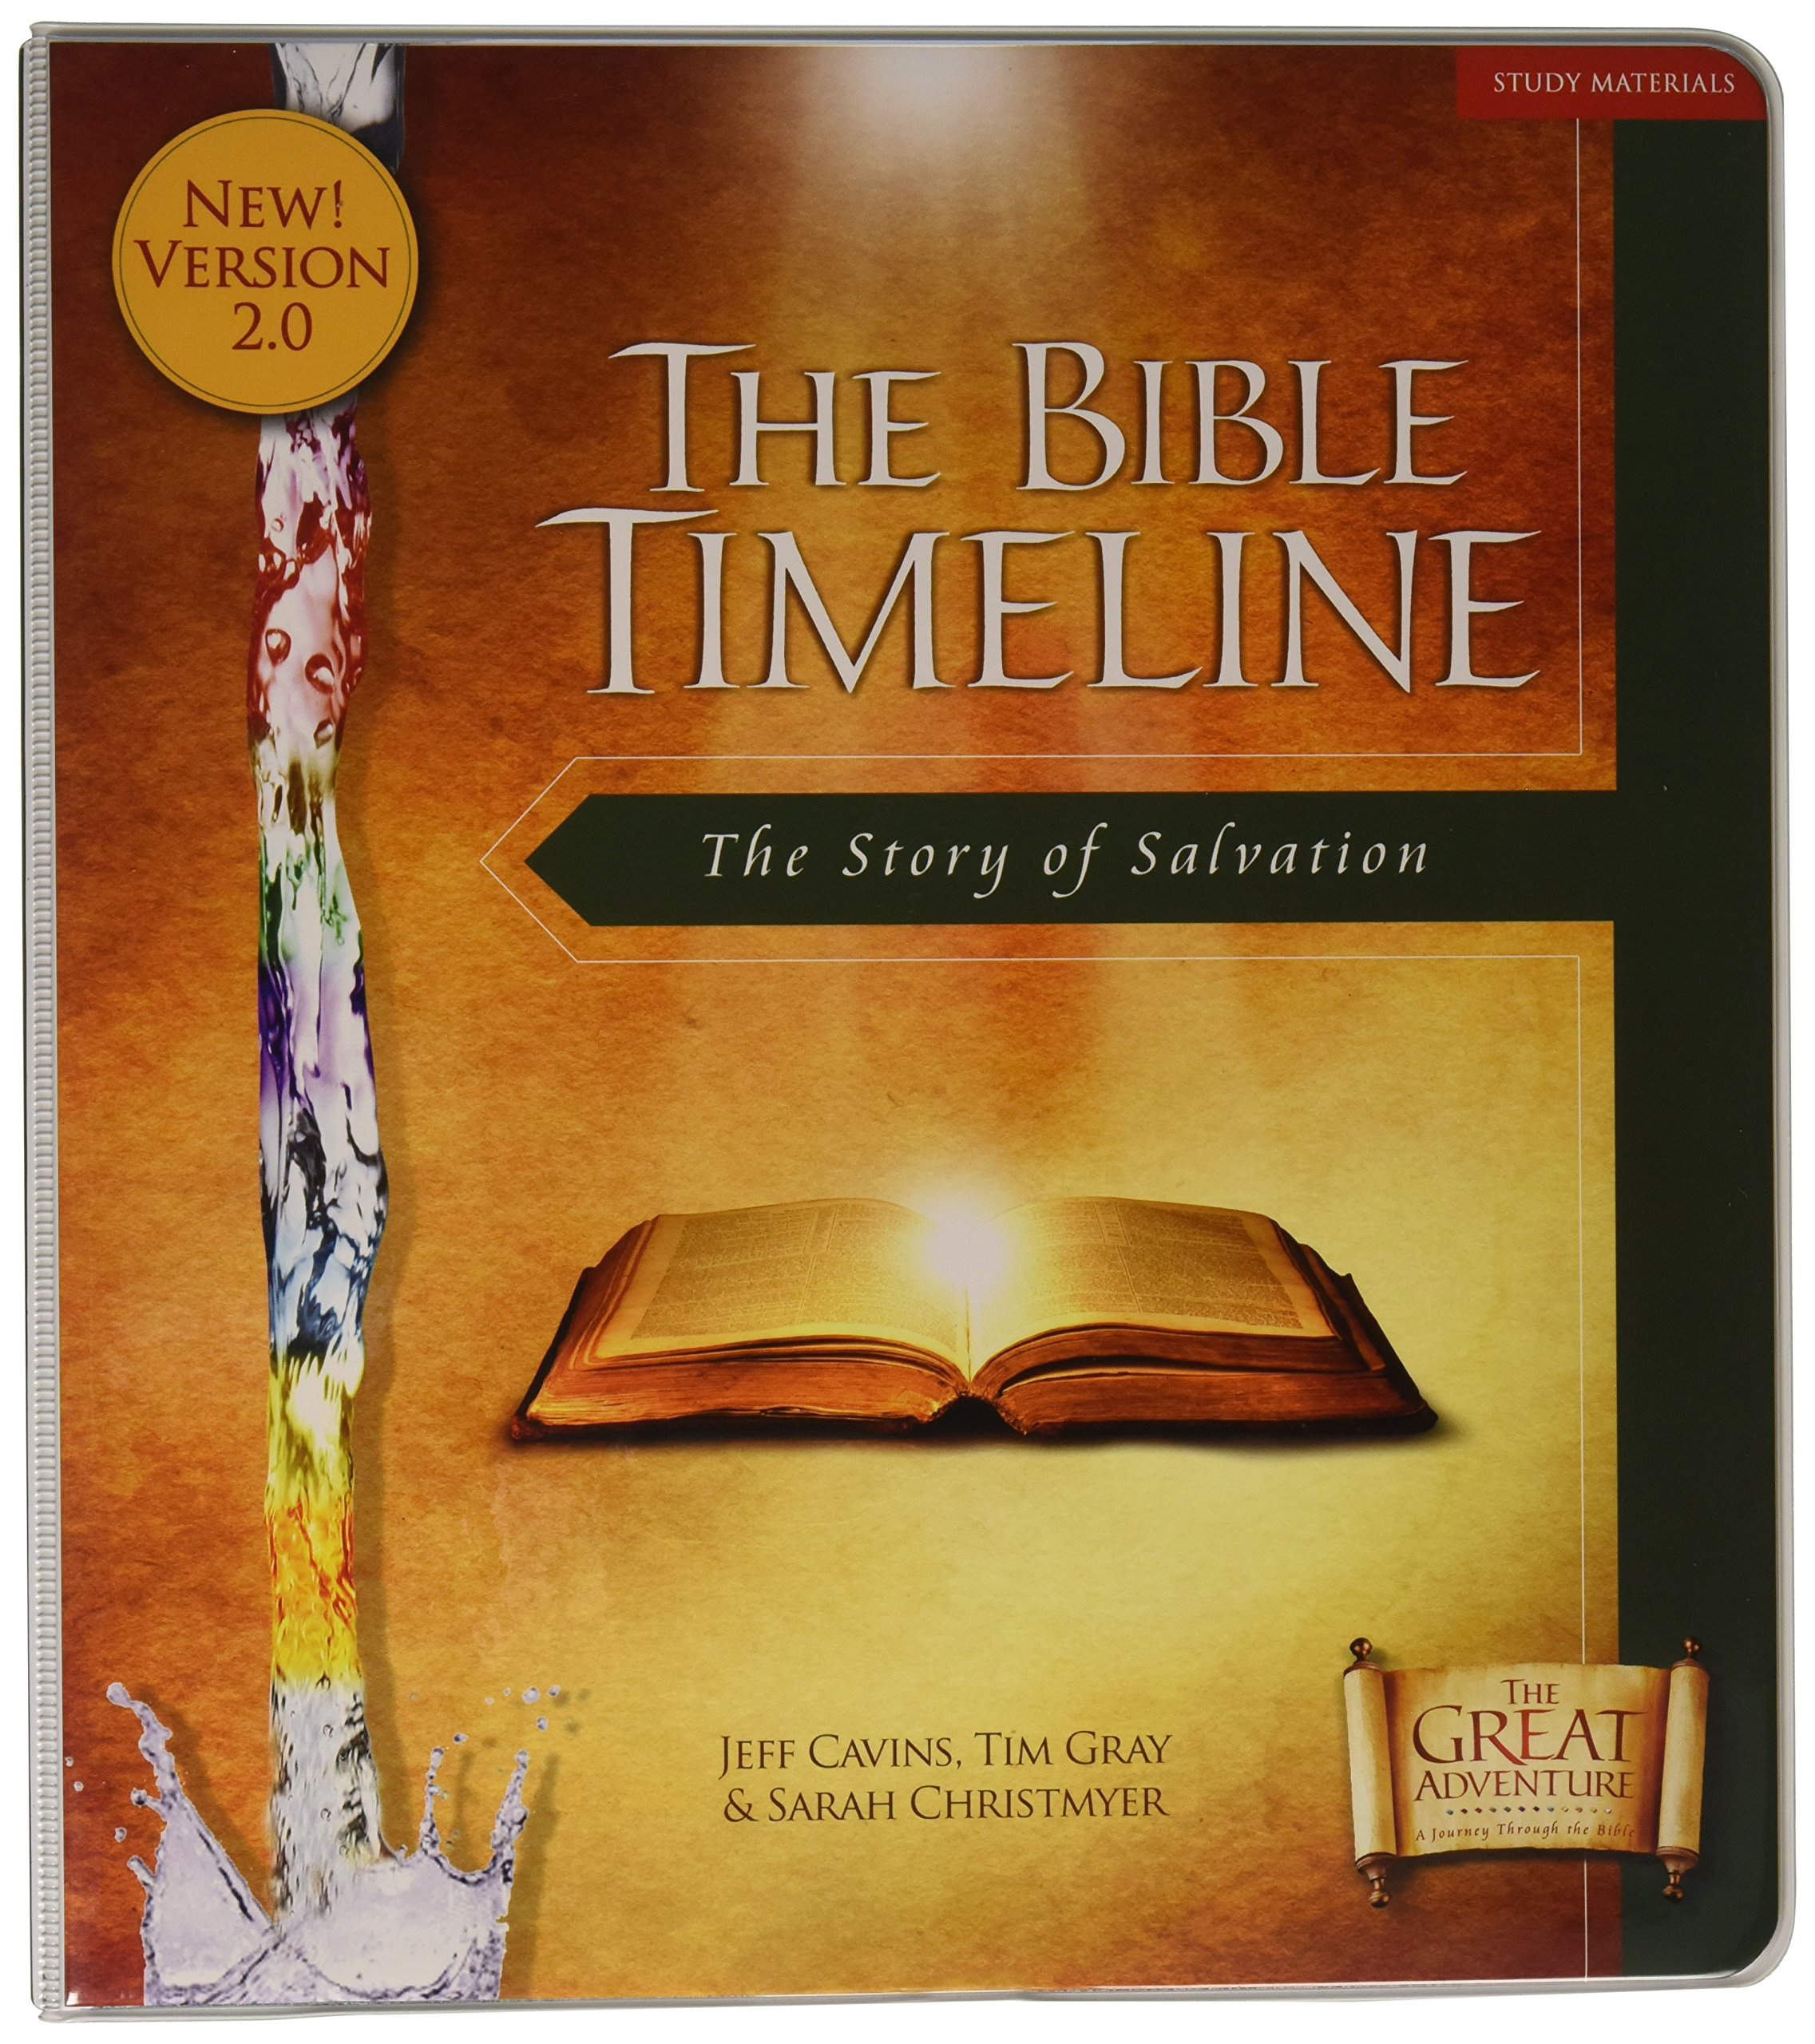 Bible Timeline 4-Part Study Study Materials: Jeff Cavins